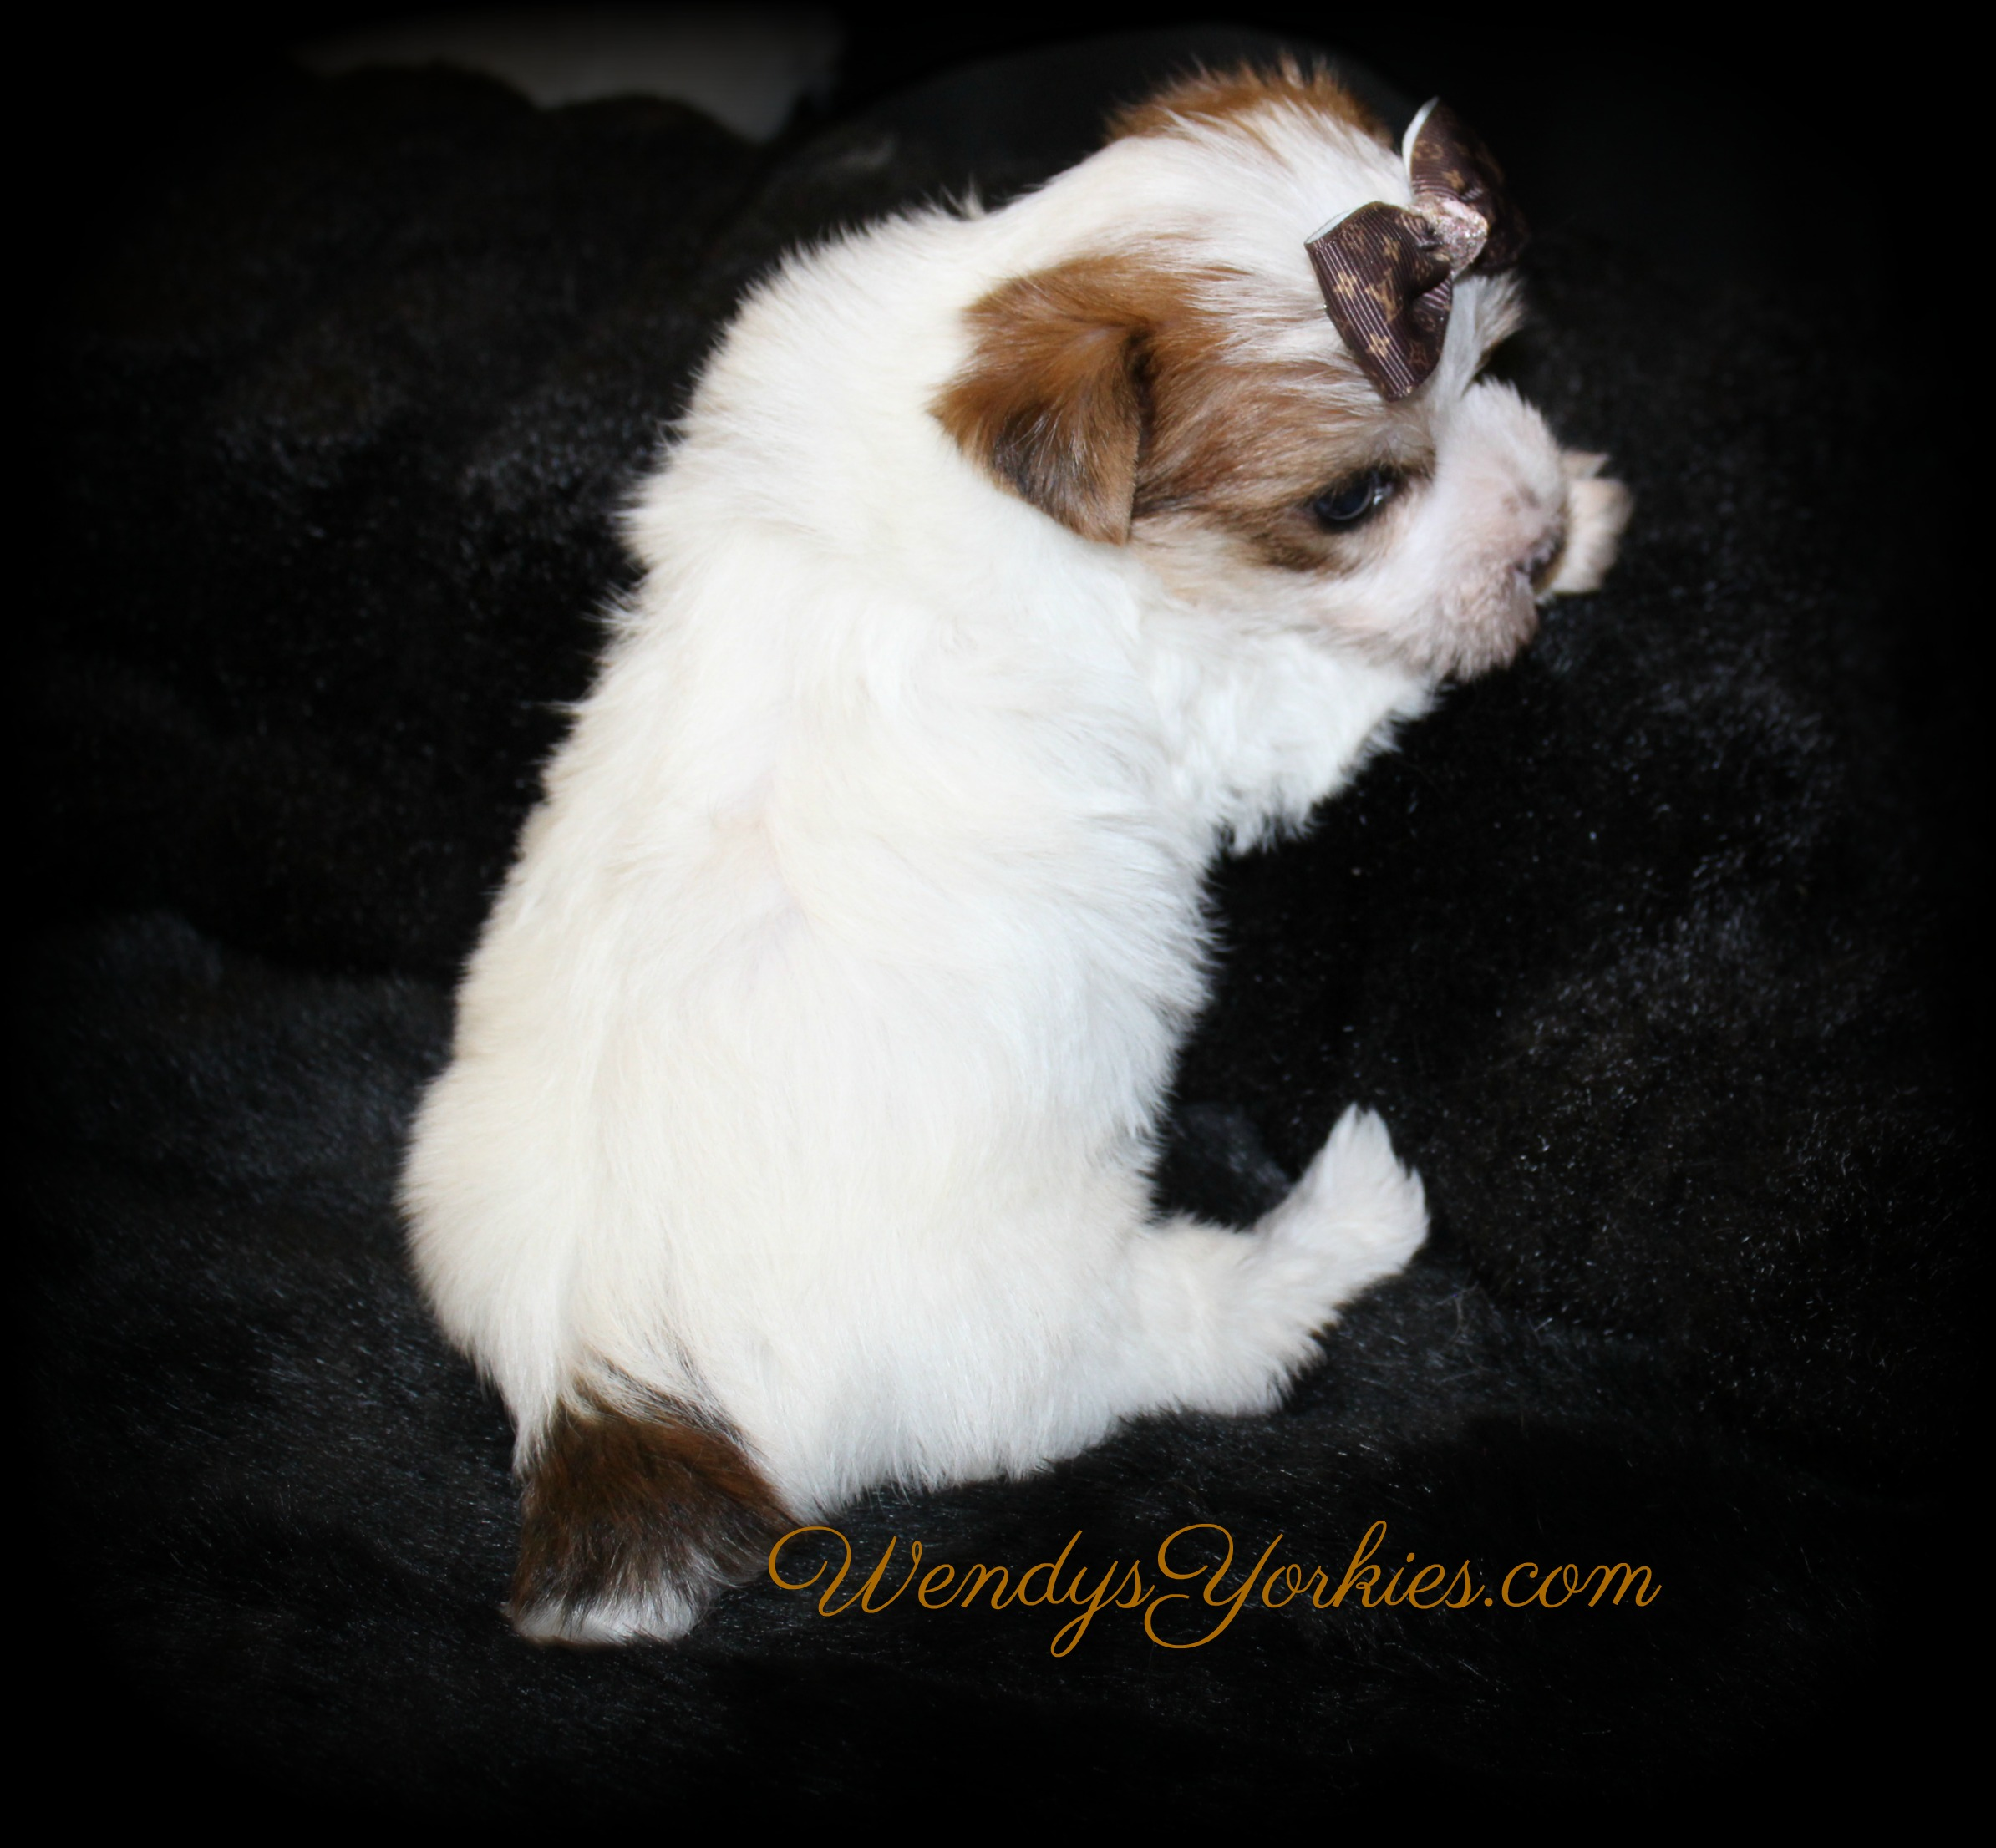 Parti Yorkie puppies for sale, LB m1, WendysYorkies.com